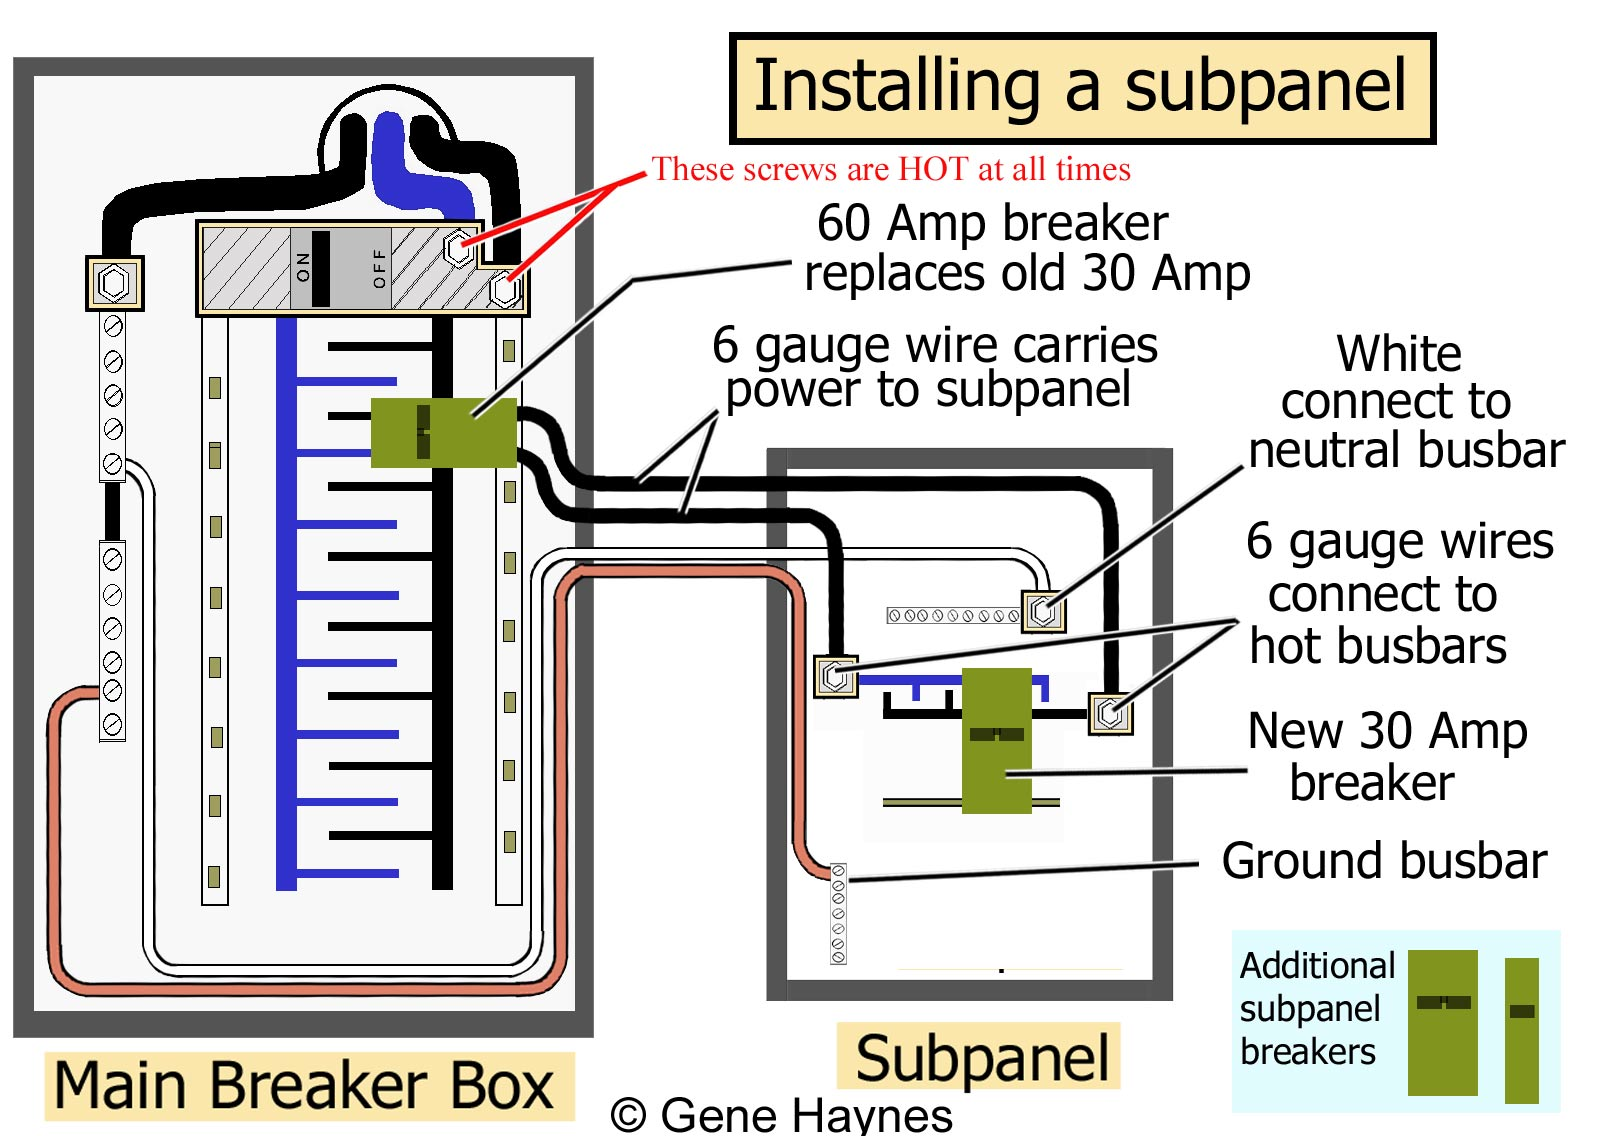 hight resolution of 1 60 150 amp breaker replaces any 240 breaker in main box near top